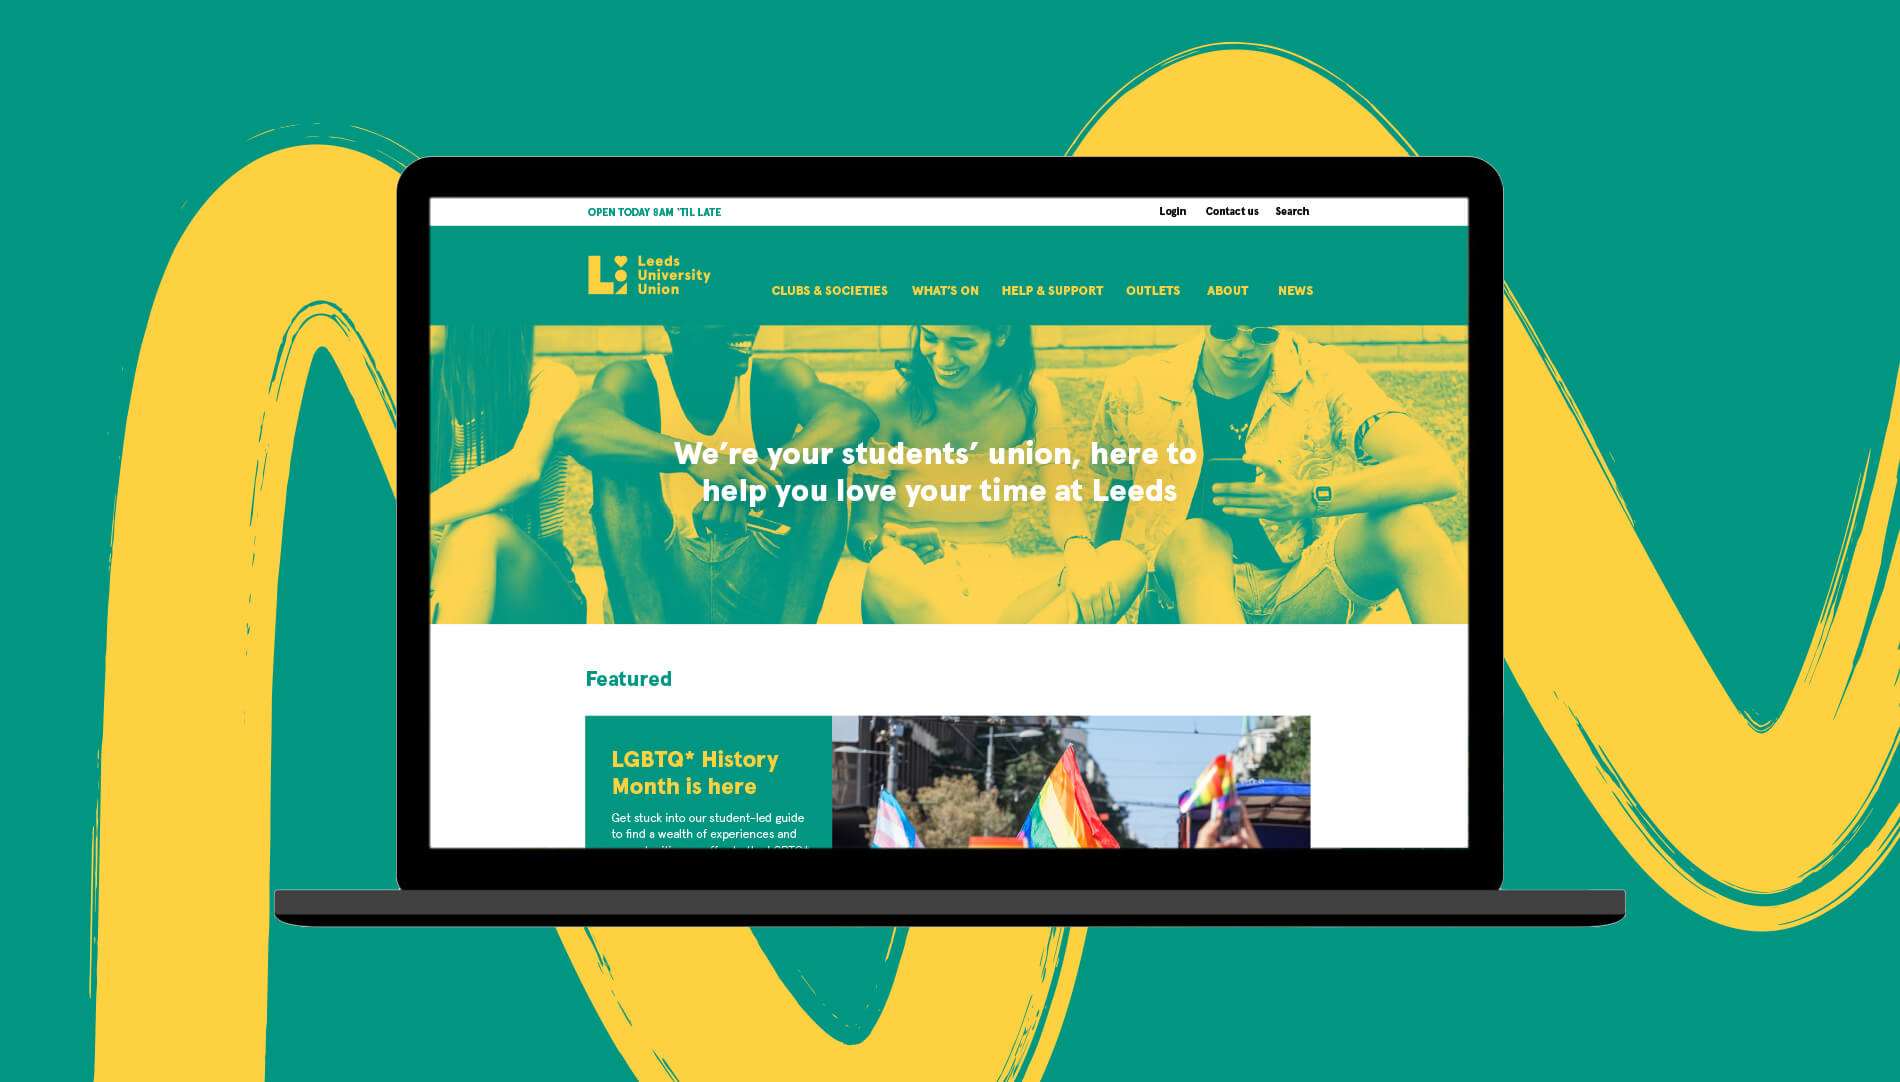 Homepage UX/UI design for Leeds University Union, shown here on a laptop.